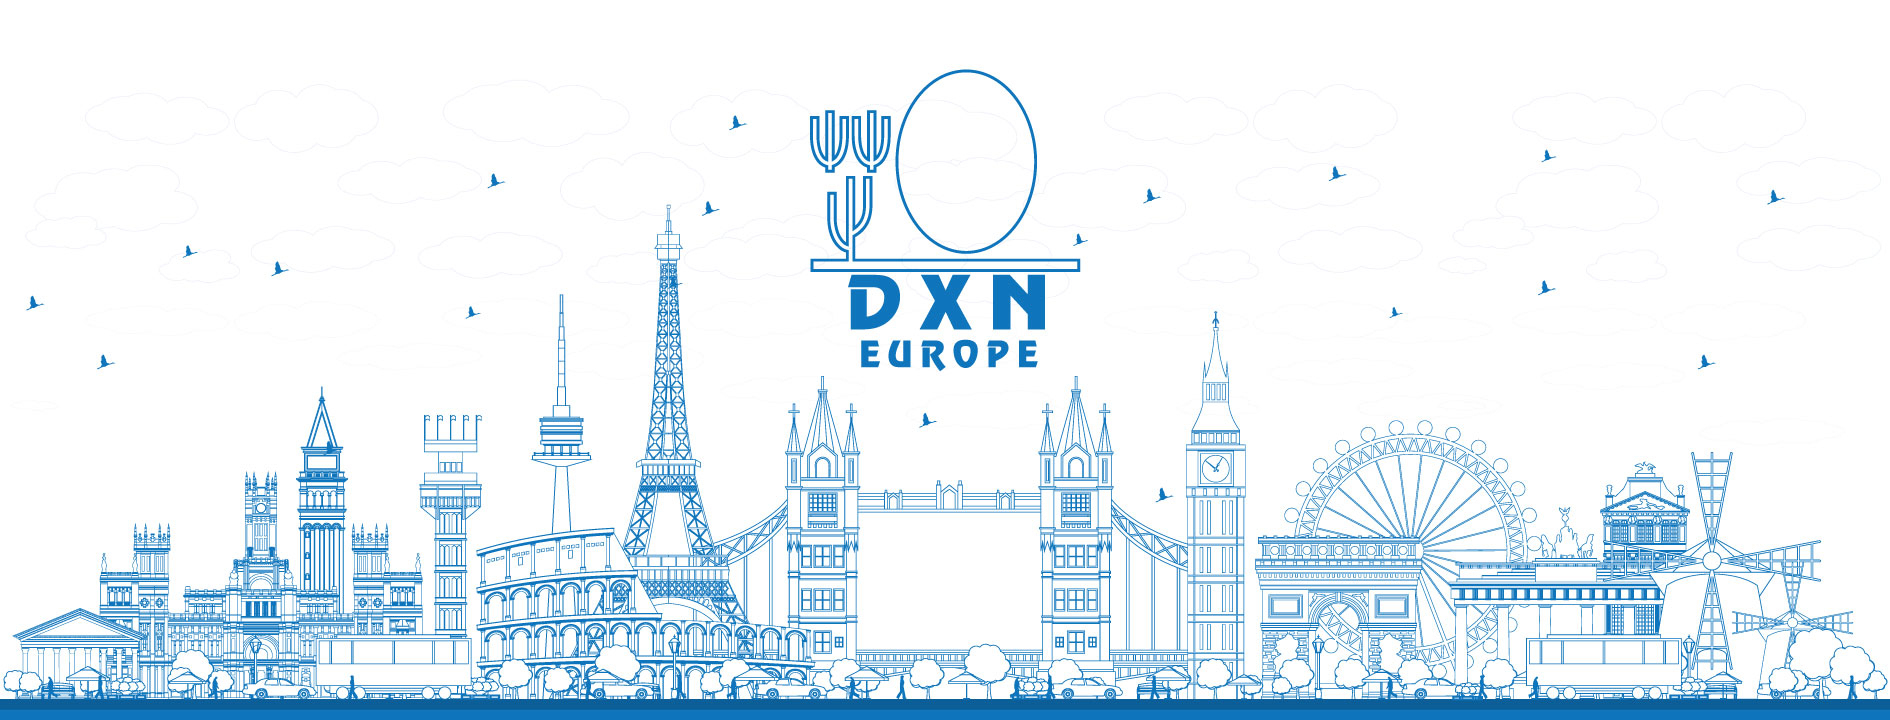 Dxn Europe Official Site avec Carte D Europe 2017